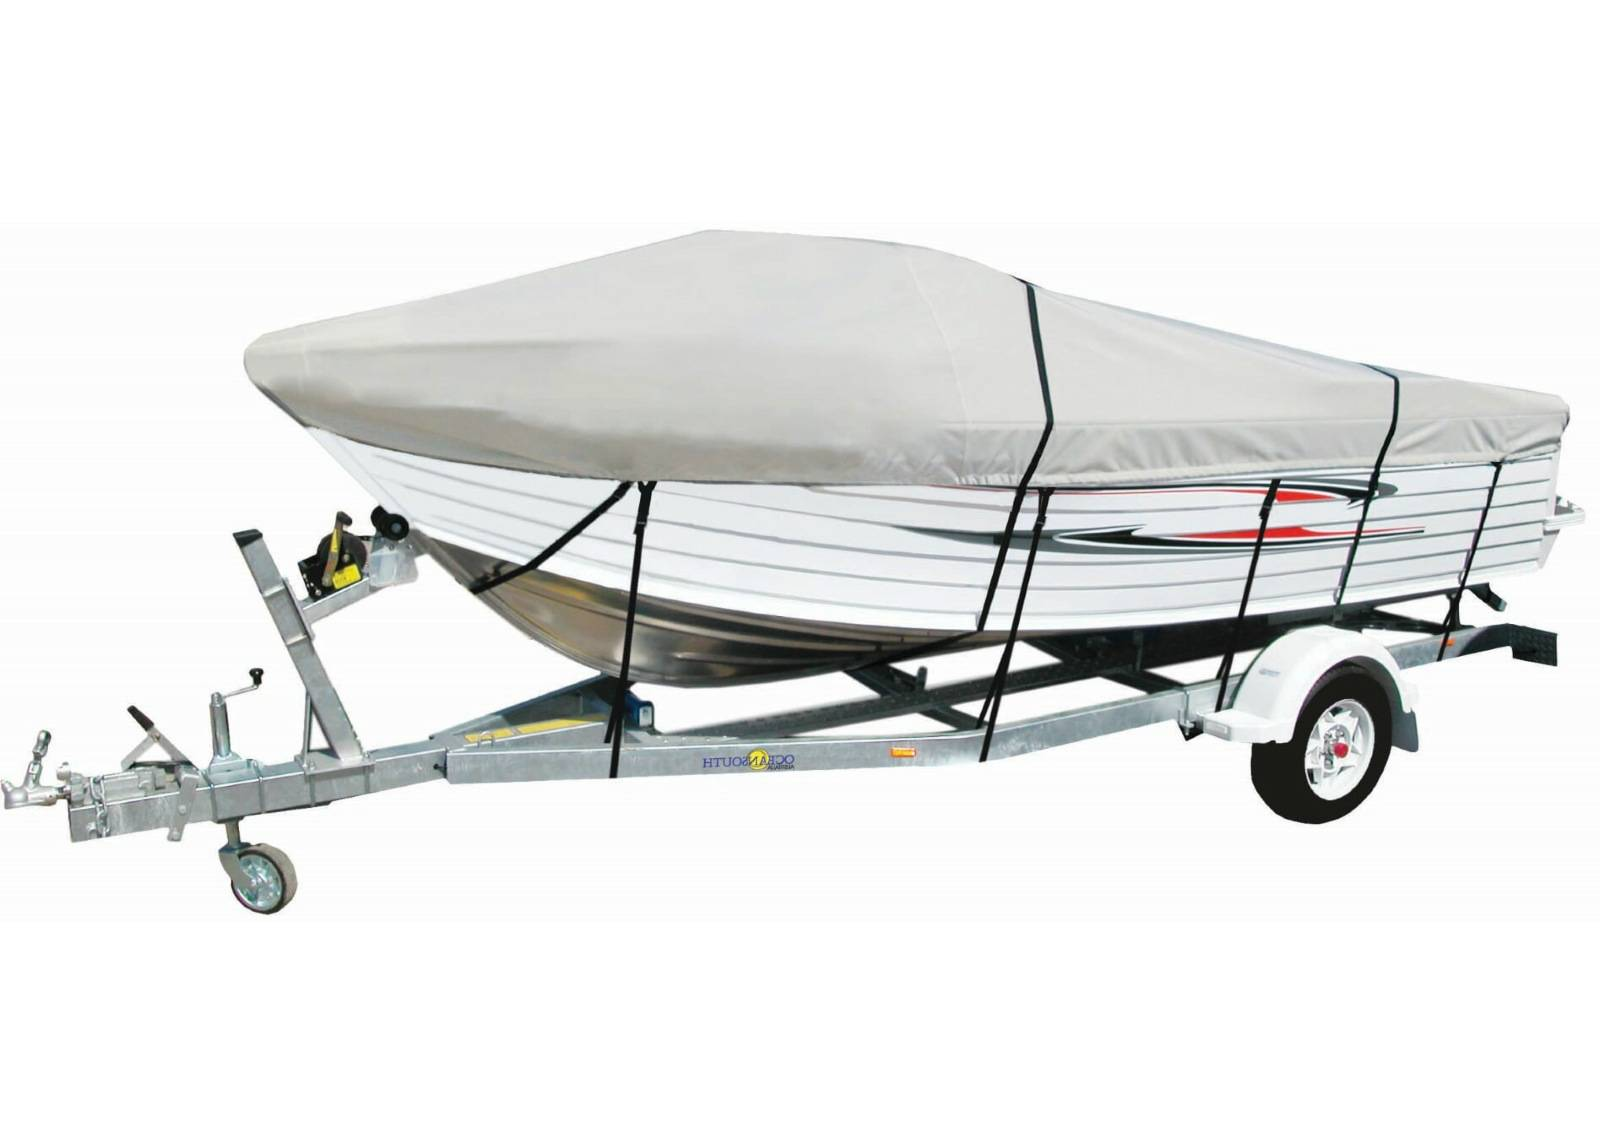 OceanSouth Venepeite Runabout tyyppisille veneille 5.6-5.9 m